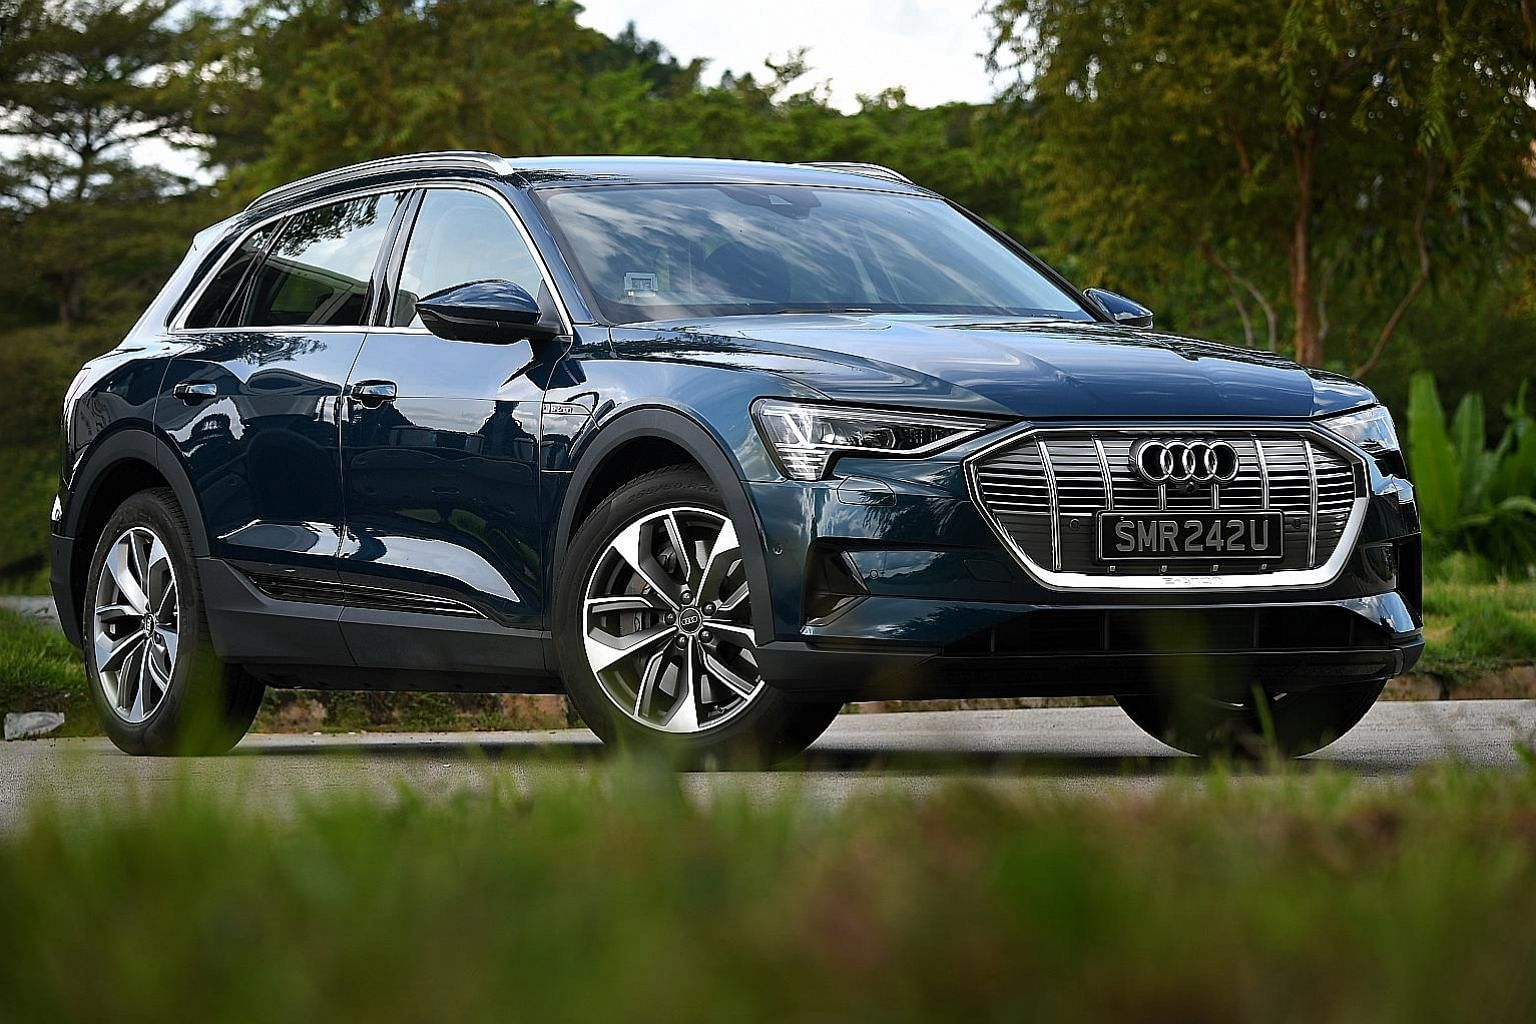 The stand-out feature of the Audi e-tron (above) is the shift lever, which is actually a small thumb-operated slide clicker situated on a palm rest styled like a nautical throttle; It is pleasantly responsive, with not one instance of missed engagement.